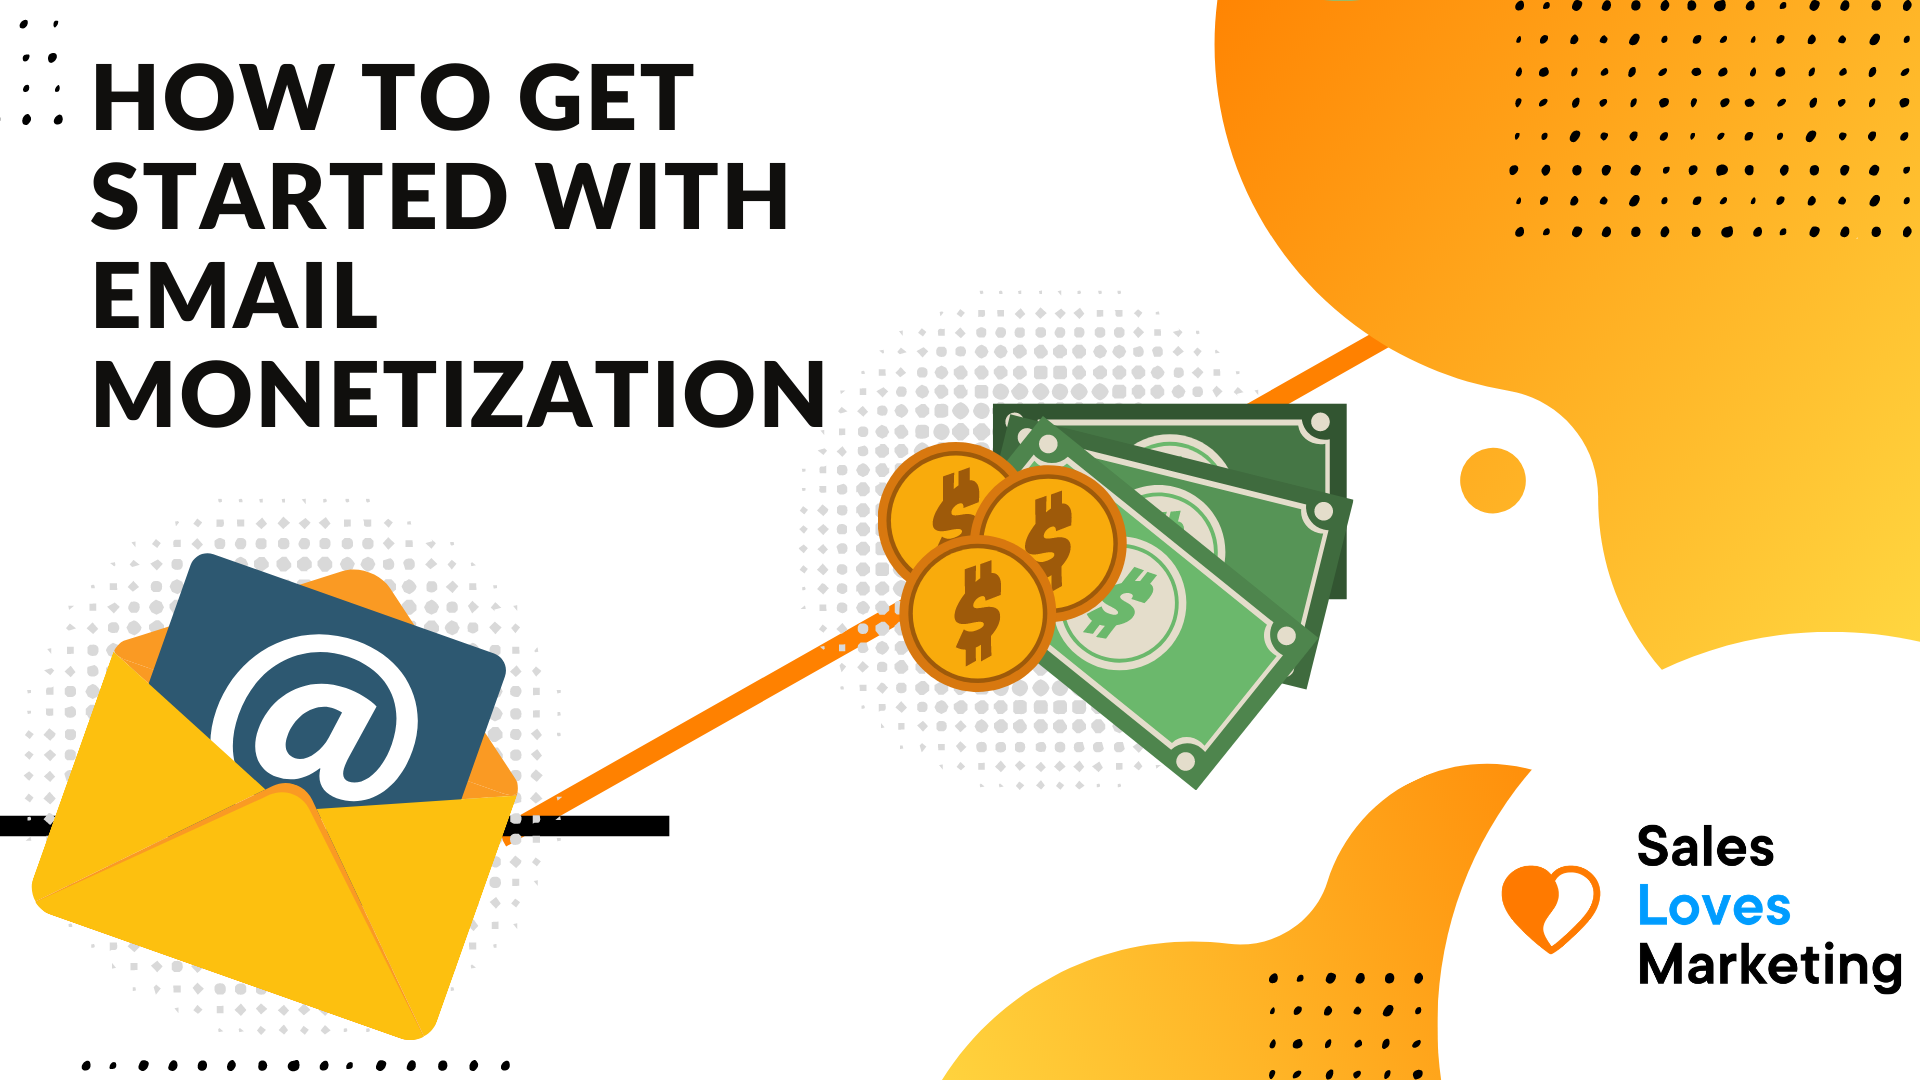 how to get started with monetisation of your email marketing.